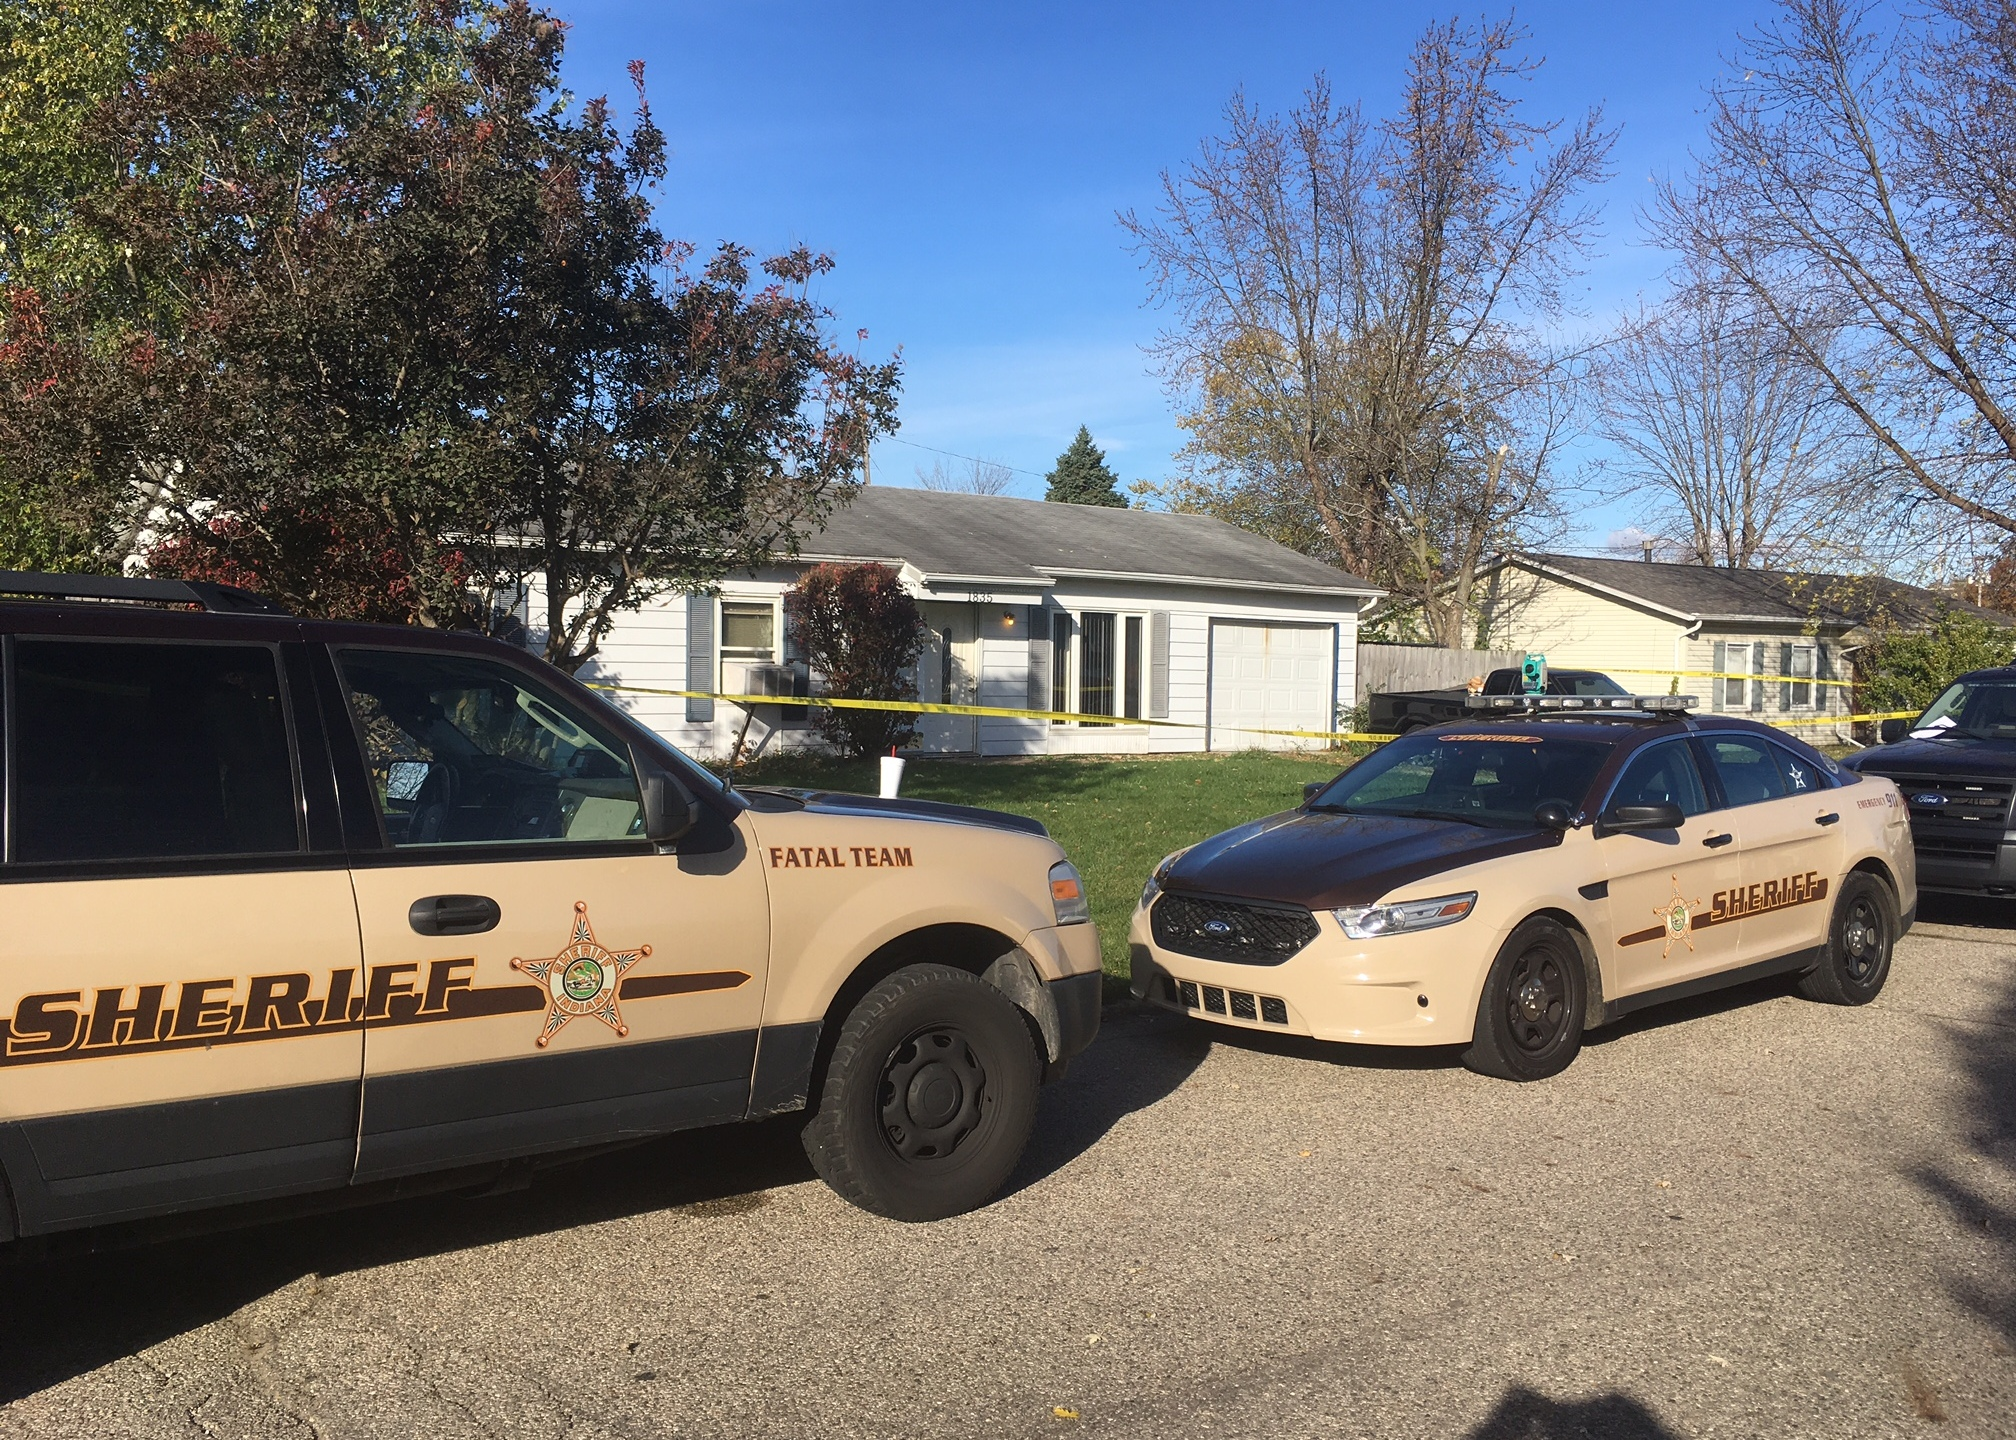 The home at 1835 Sue Ave.,Warsaw, where the body of a 2-year-old was found buried in a shallow grave Thursday, Nov. 10, 2016, is shown. (Chad H_219816